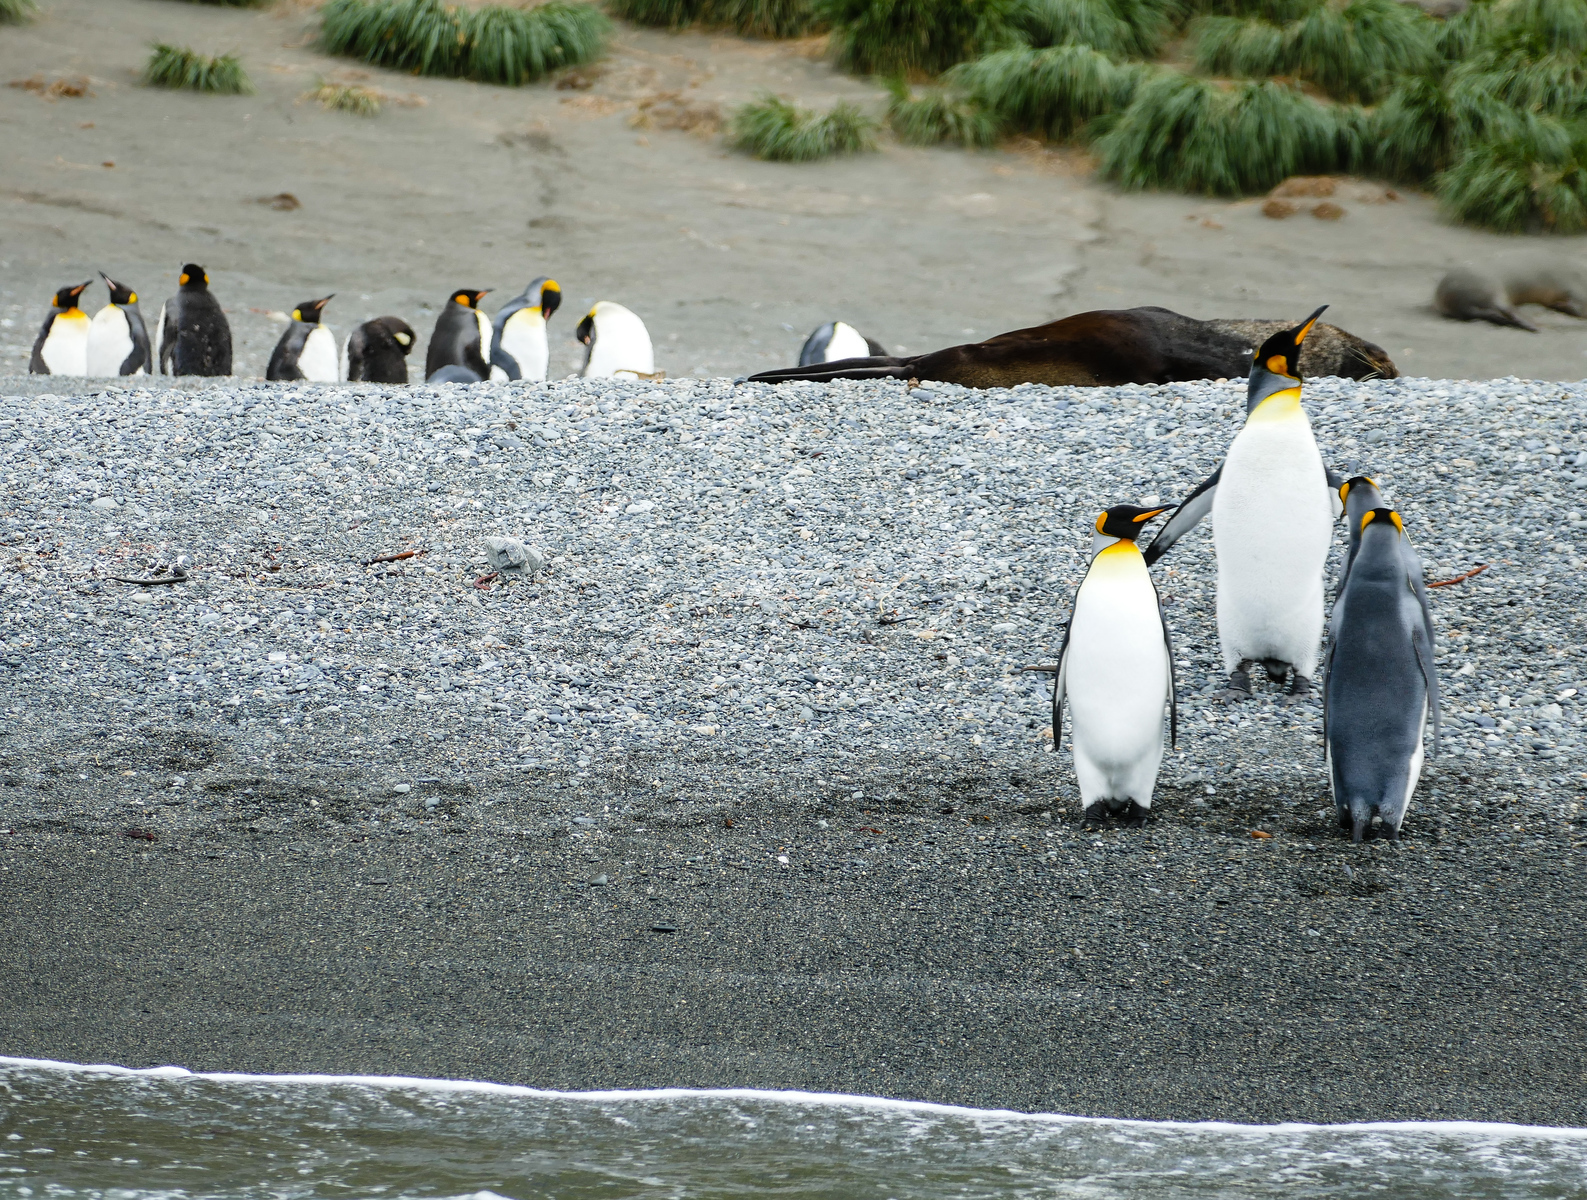 King penguins standing near the water's edge on a visit to Cooper Island in South Georgia.